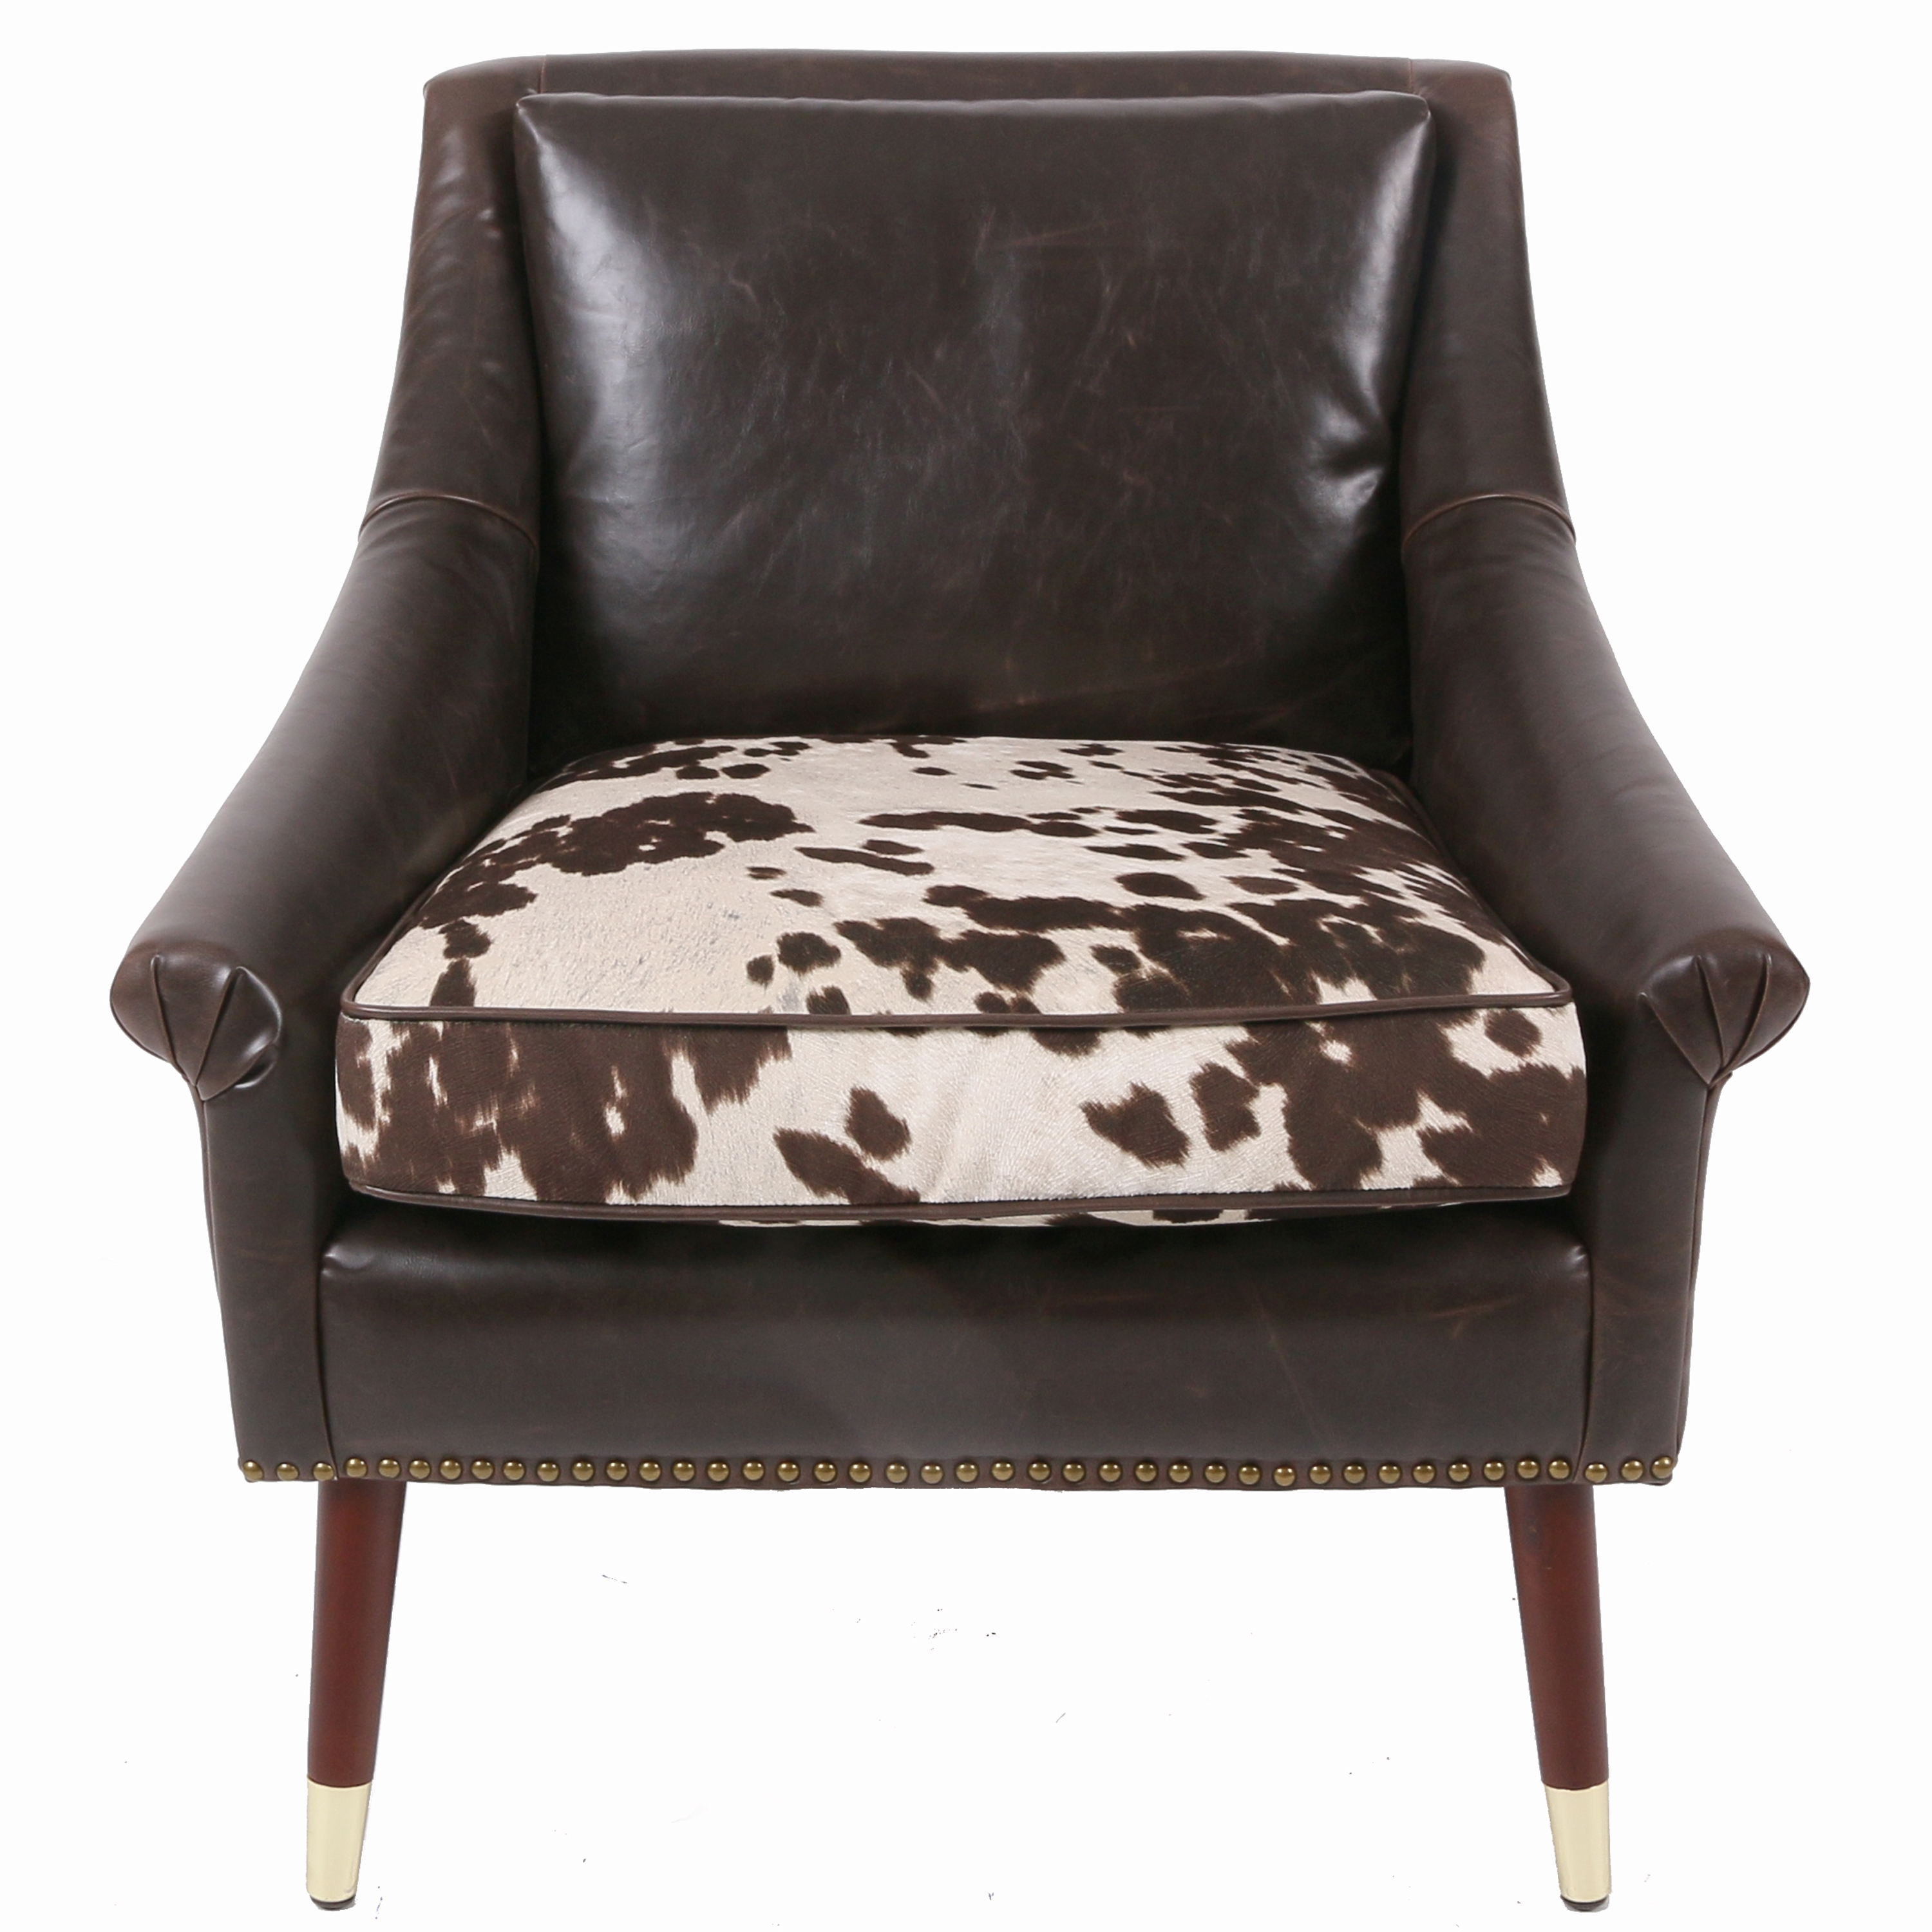 cowhide print accent chair resin outdoor rocking chairs 3500035 npd furniture wholesale lifestyle